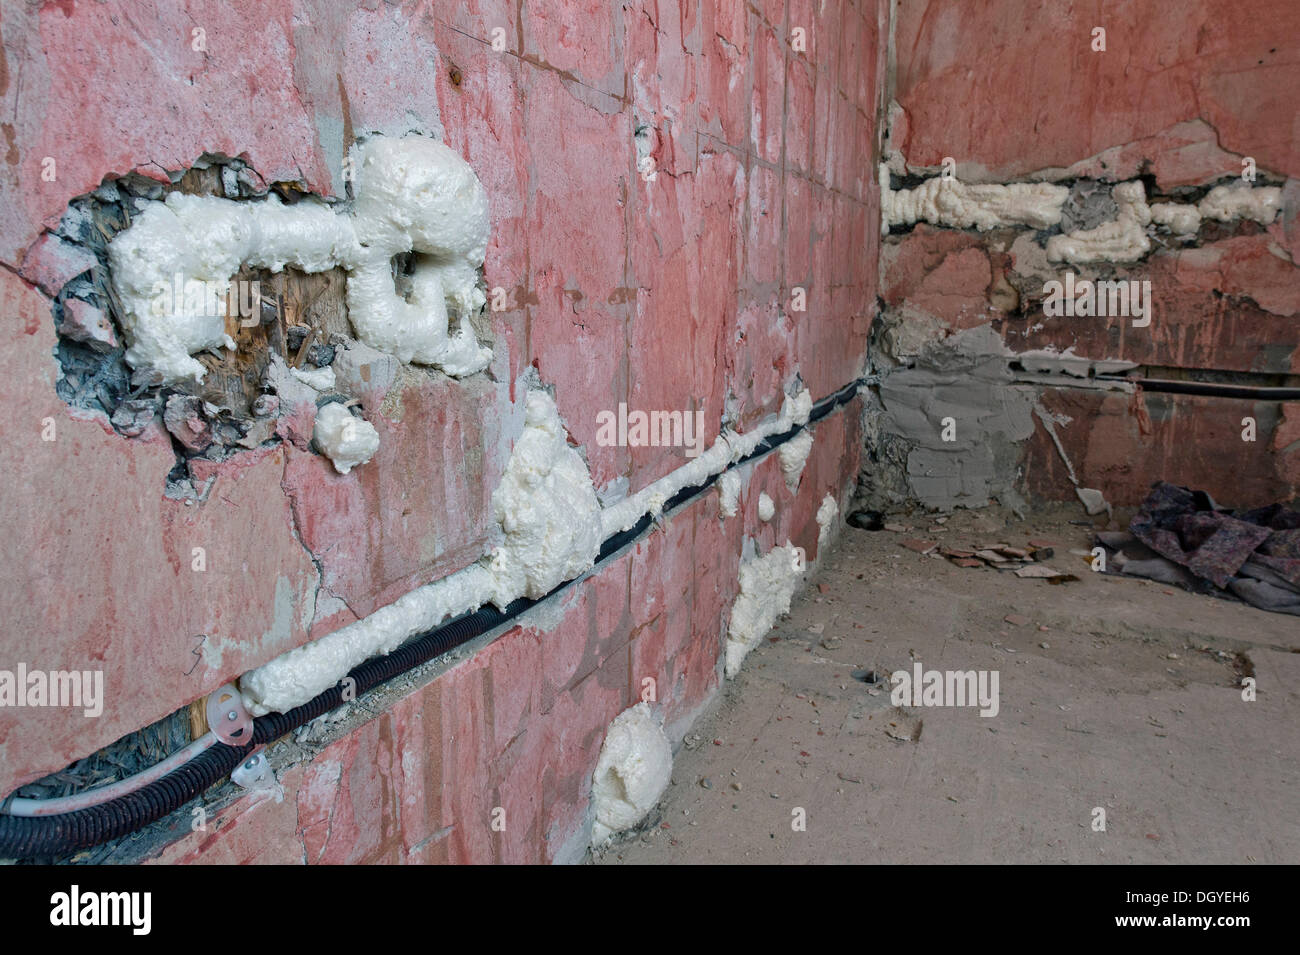 Cable channels, wall cavities filled with foam insulation, renovation of an old building, Stuttgart, Baden-Wuerttemberg - Stock Image